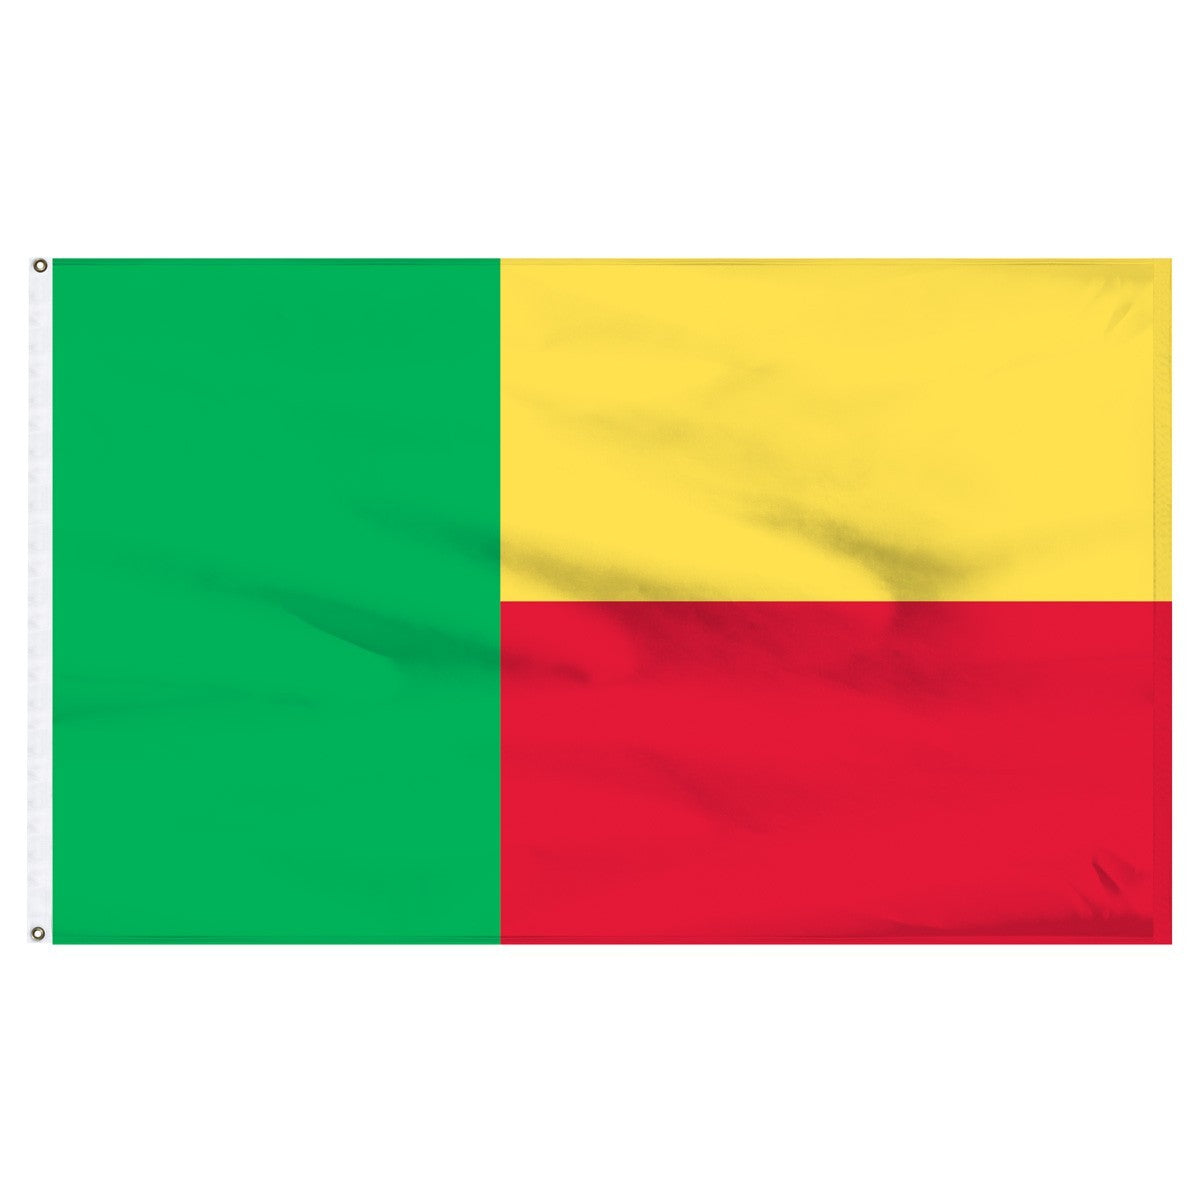 Benin 3' x 5' Outdoor Nylon Country Flag